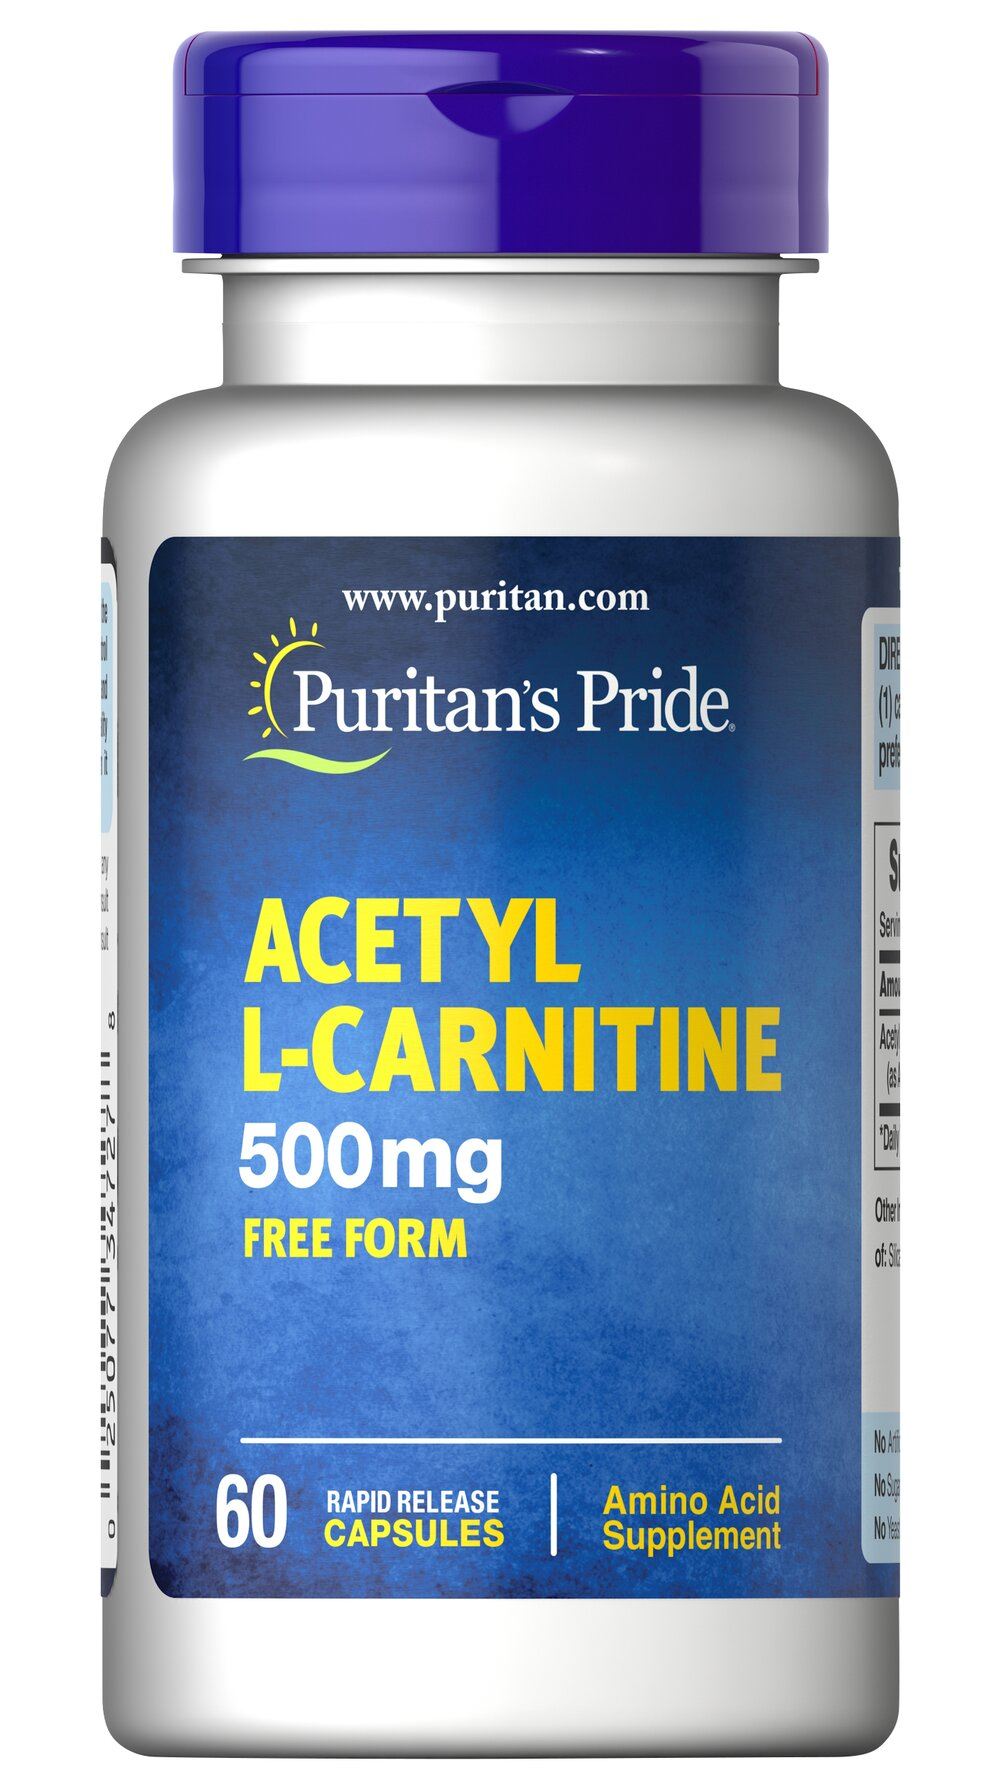 Acetyl L-Carnitine 500 mg <p>Acetyl L-Carnitine plays a role in the metabolism of food to energy.** Studies indicate that the combination of Alpha Lipoic Acid and Acetyl L-Carnitine helps promote metabolic functioning to fight against free radicals and oxidative stress.**</p>  60 Capsules 500 mg $17.49